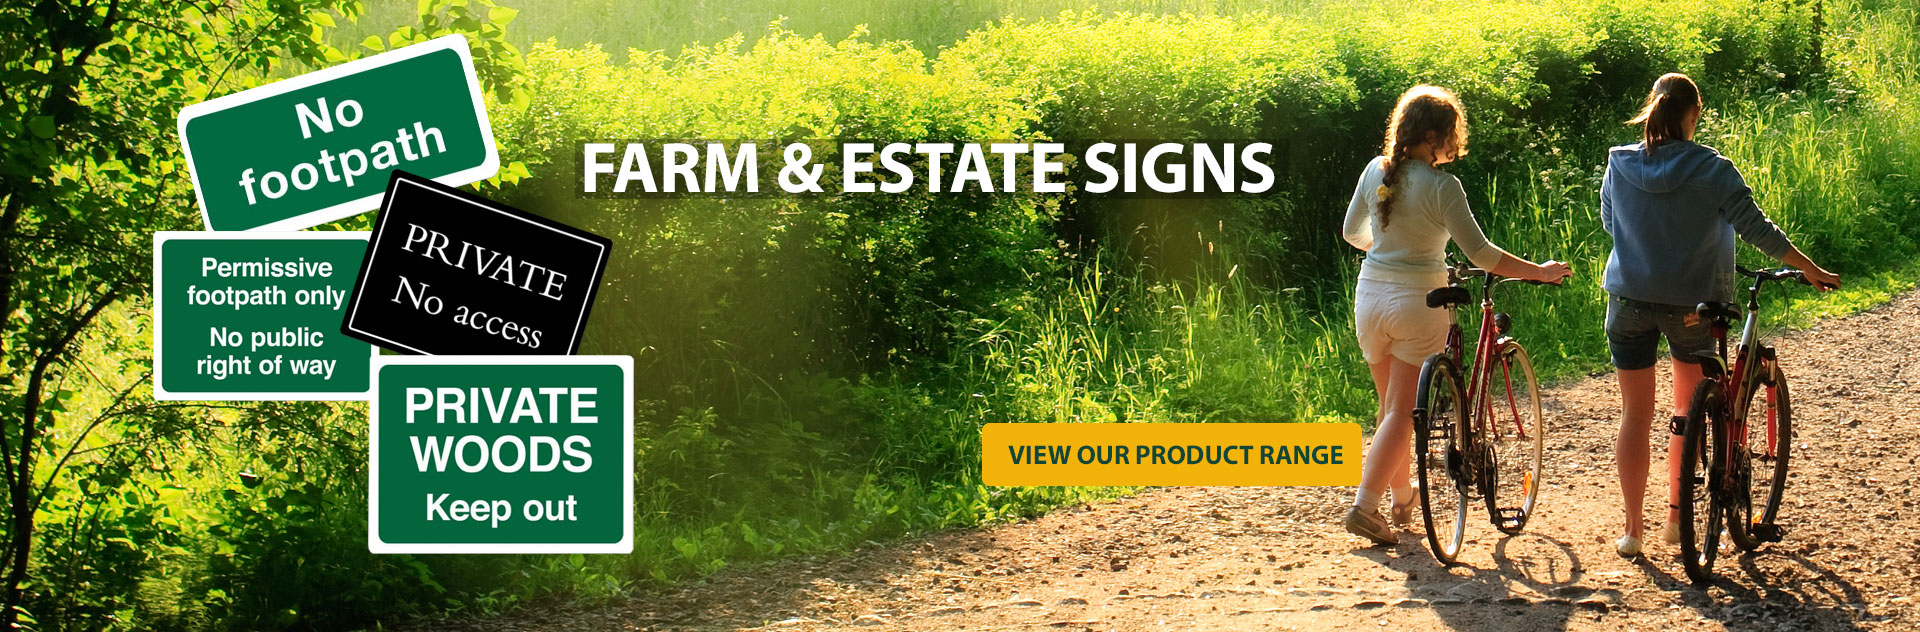 Farm & Estate Signs